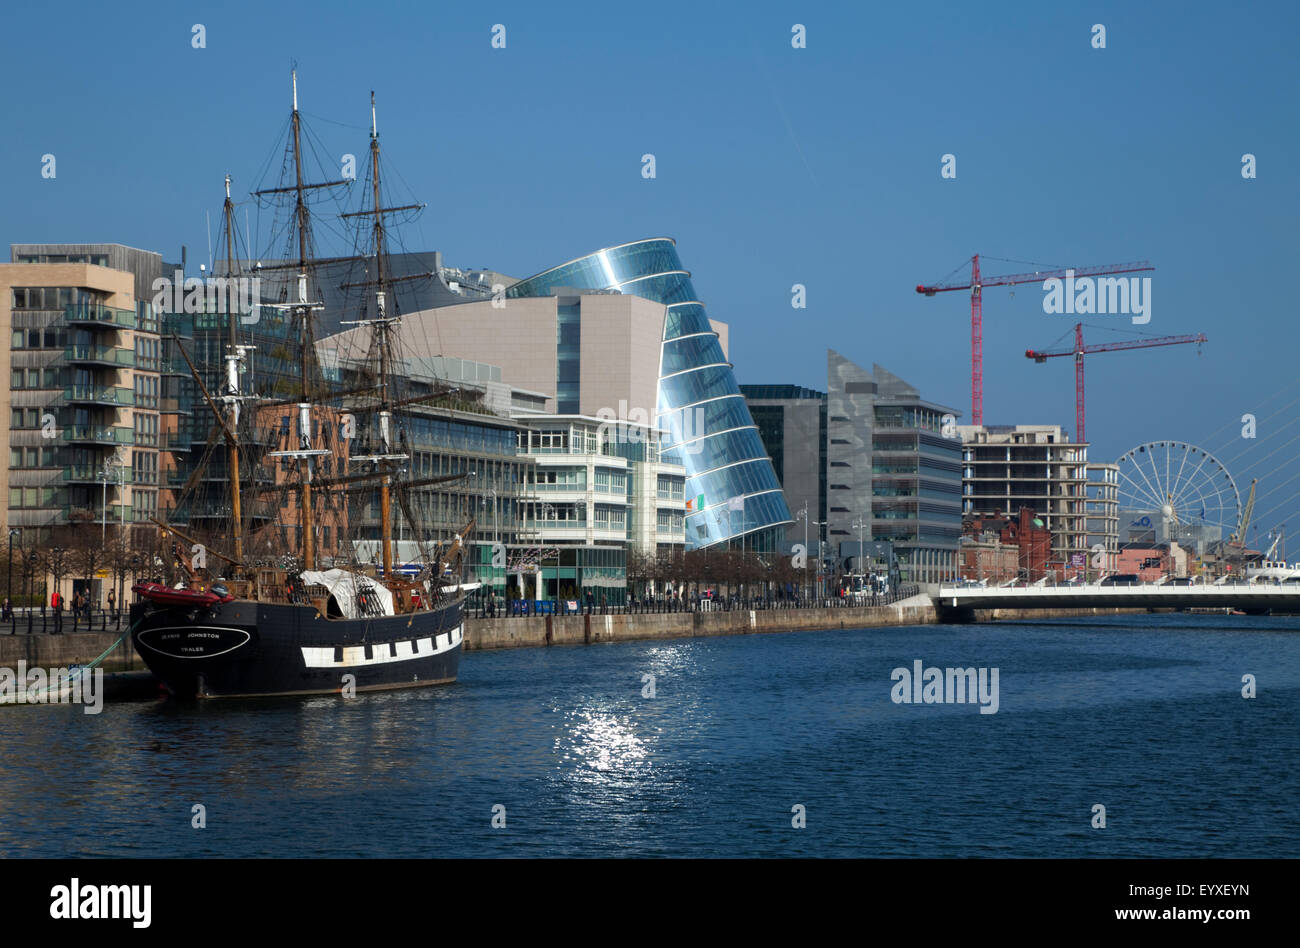 'Jeanie Johnston'  launched 6th May, 2000, Reconstructed Famine Ship and Museum on the River Liffey, Dublin - Stock Image